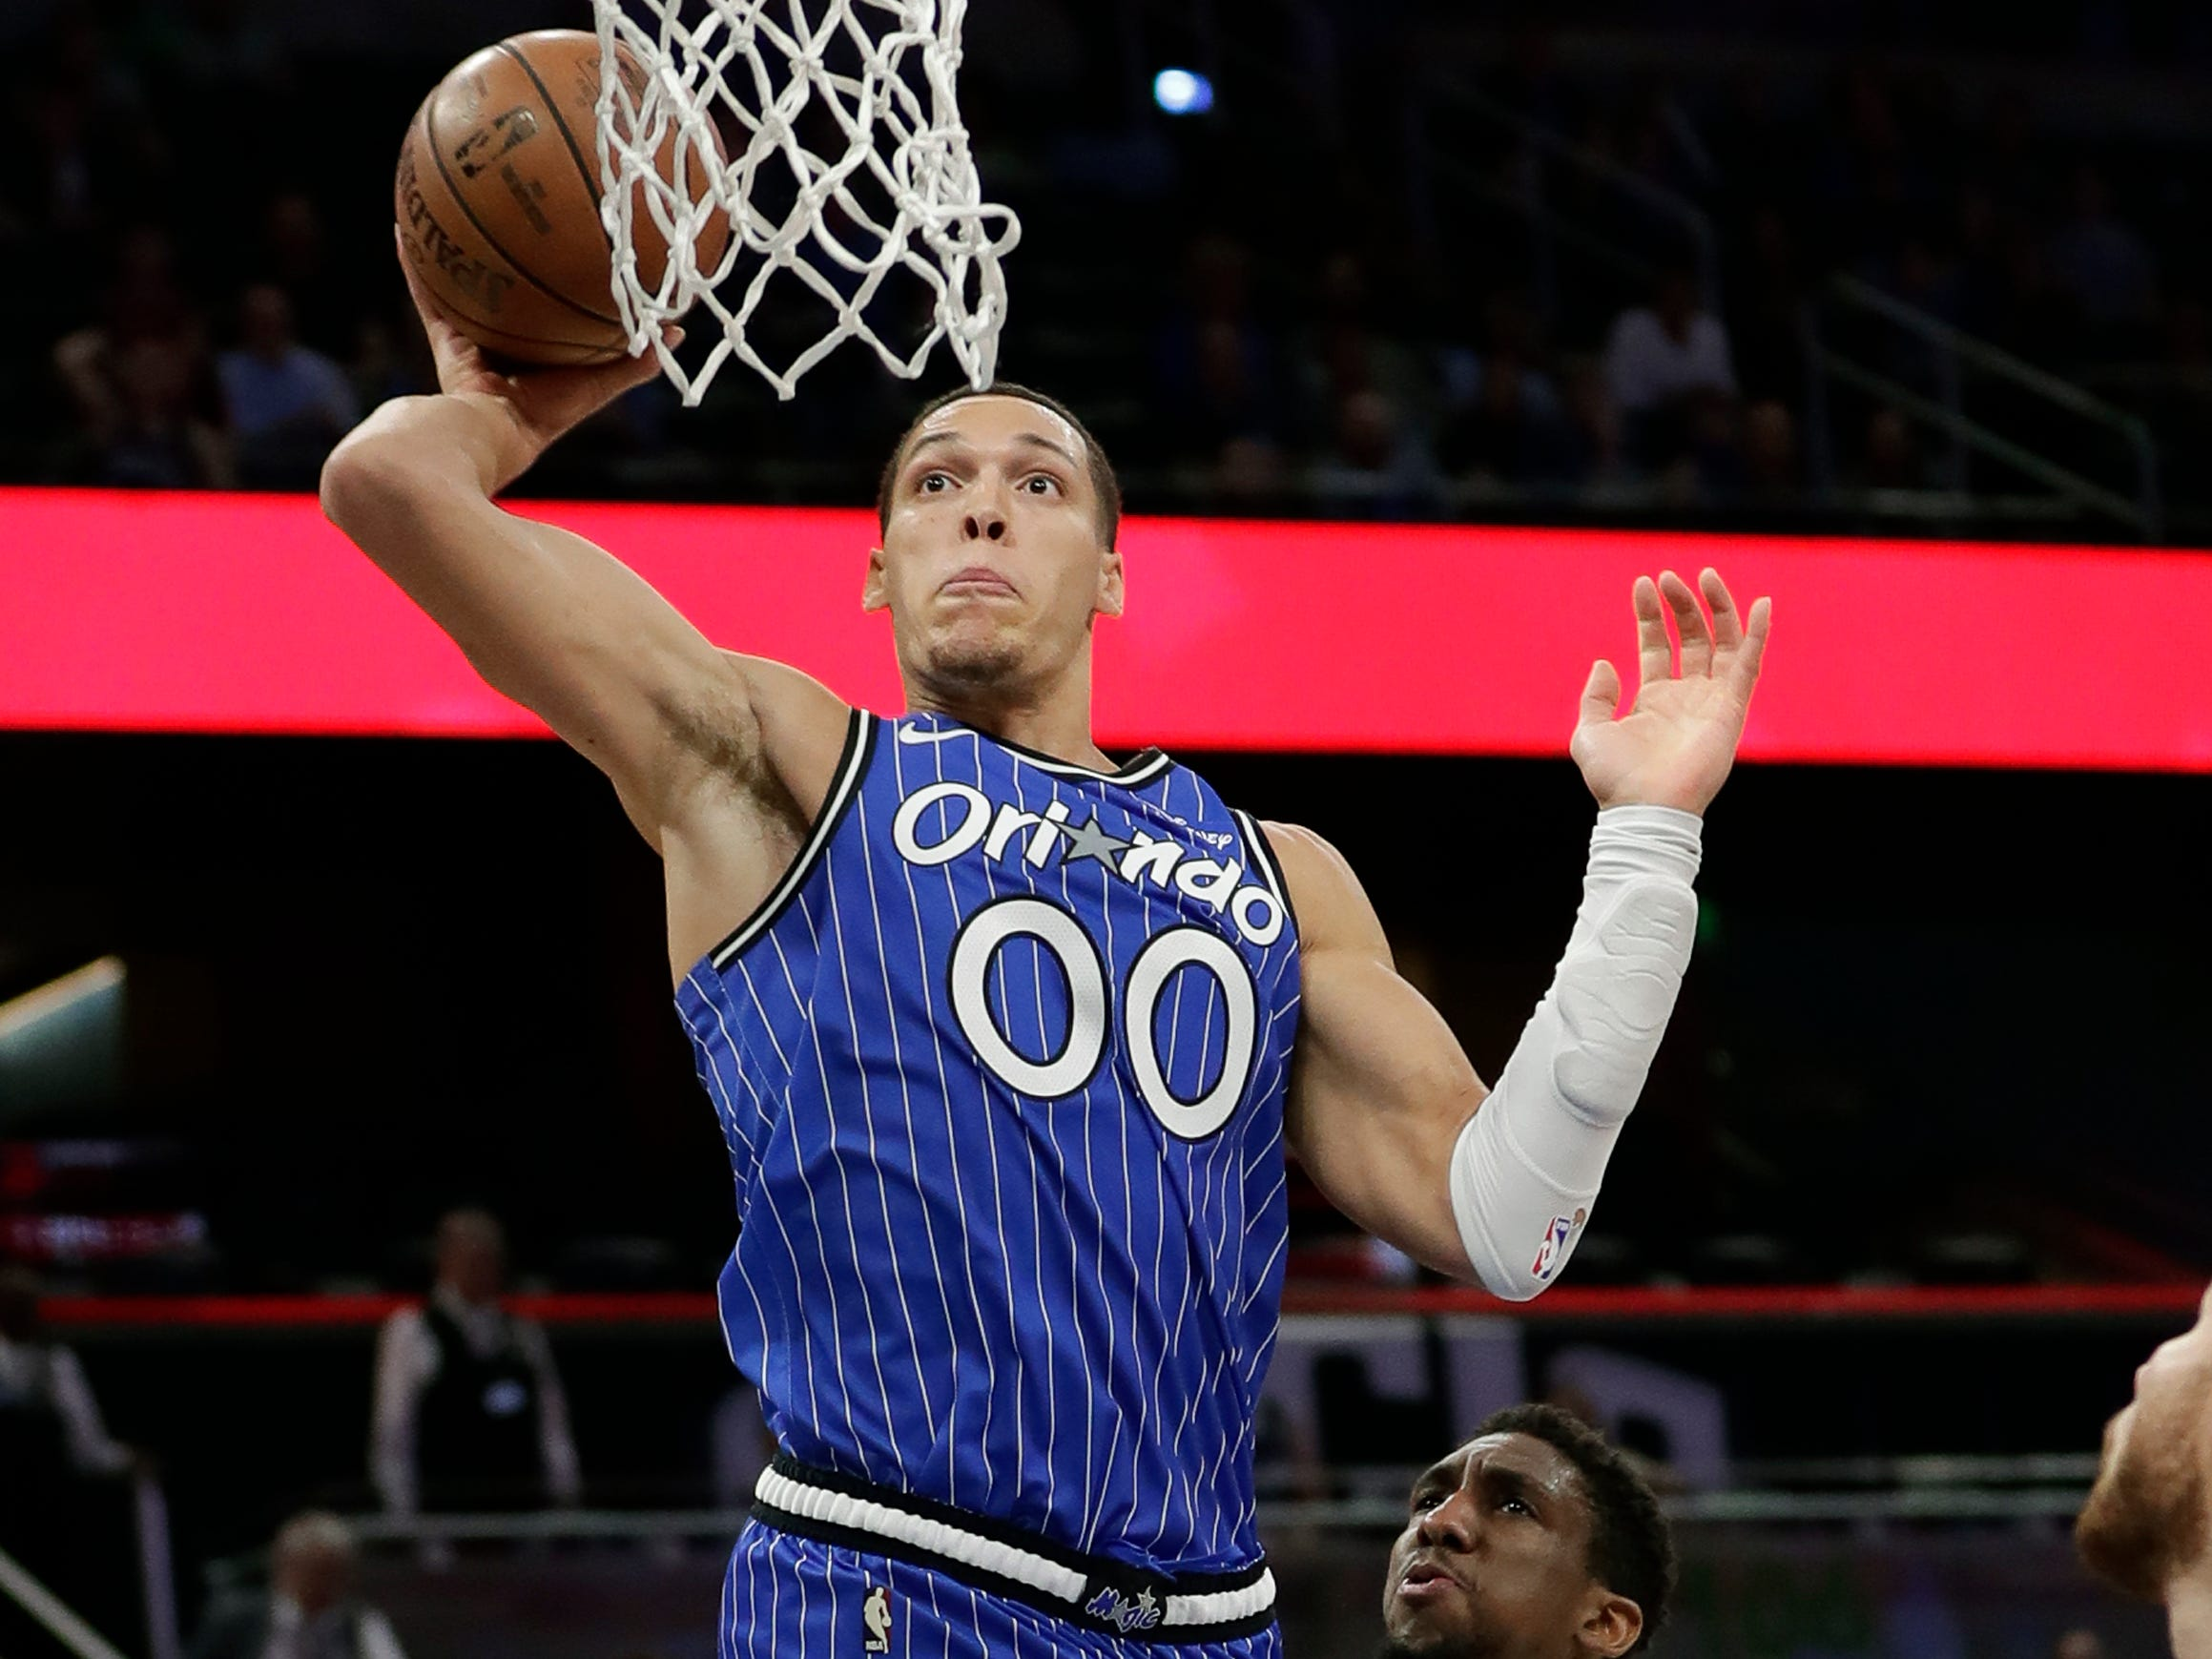 Orlando Magic's Aaron Gordon (00) goes up to dunk over Detroit Pistons' Langston Galloway, right, during the second half of an NBA basketball game, Wednesday, Nov. 7, 2018, in Orlando, Fla.